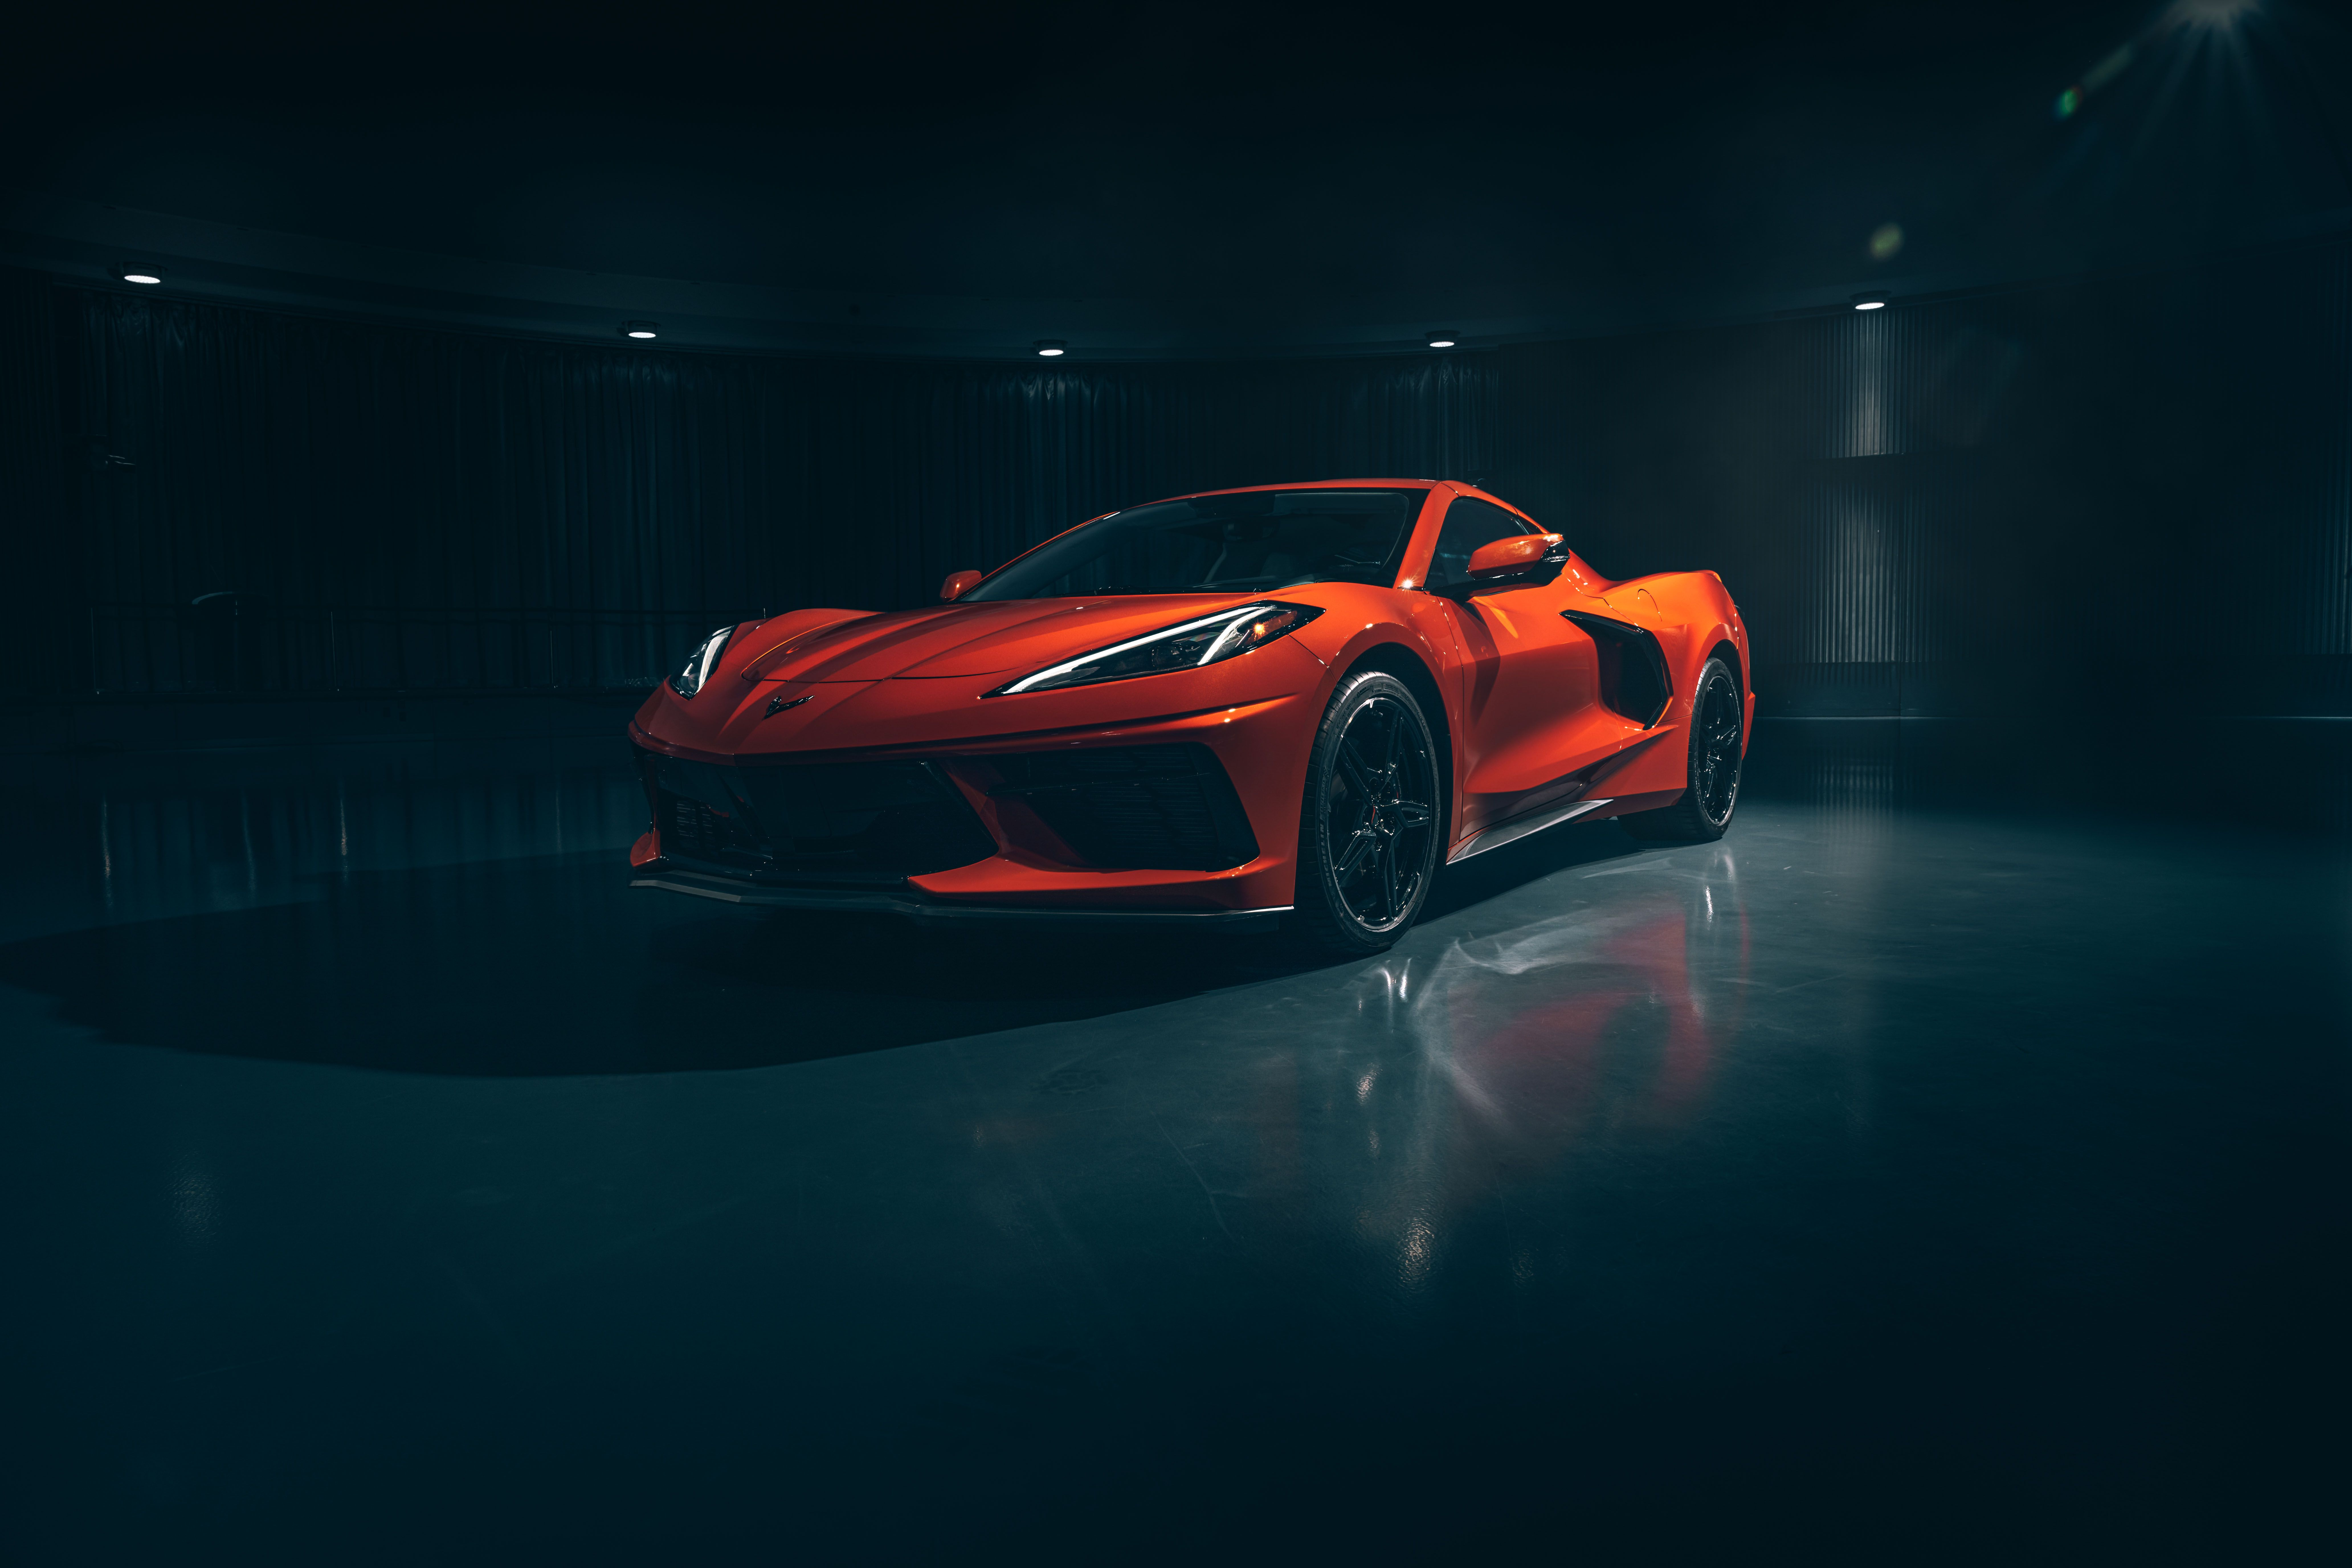 Zendha 2020 Corvette Stingray Wallpaper 8256x5504